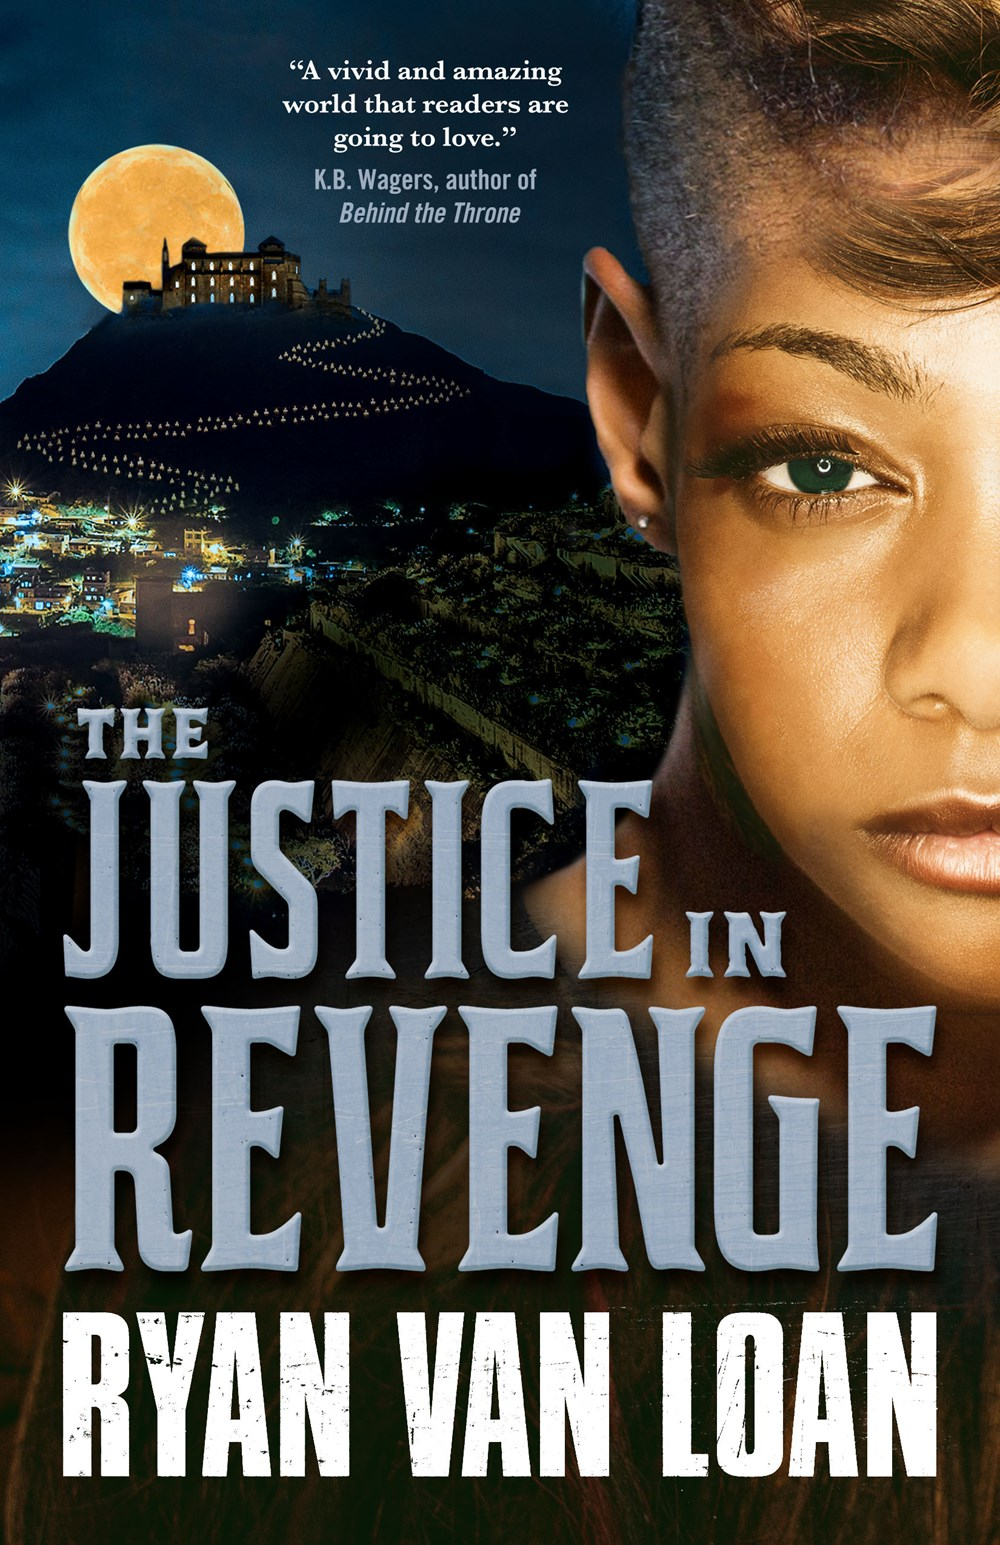 The cover for THE JUSTICE IN REVENGE features a brown-skinned femme with green eyes, unsmiling, in front of a city that prominently features a large building at the top of a hill. The moon, behind the city, is full.